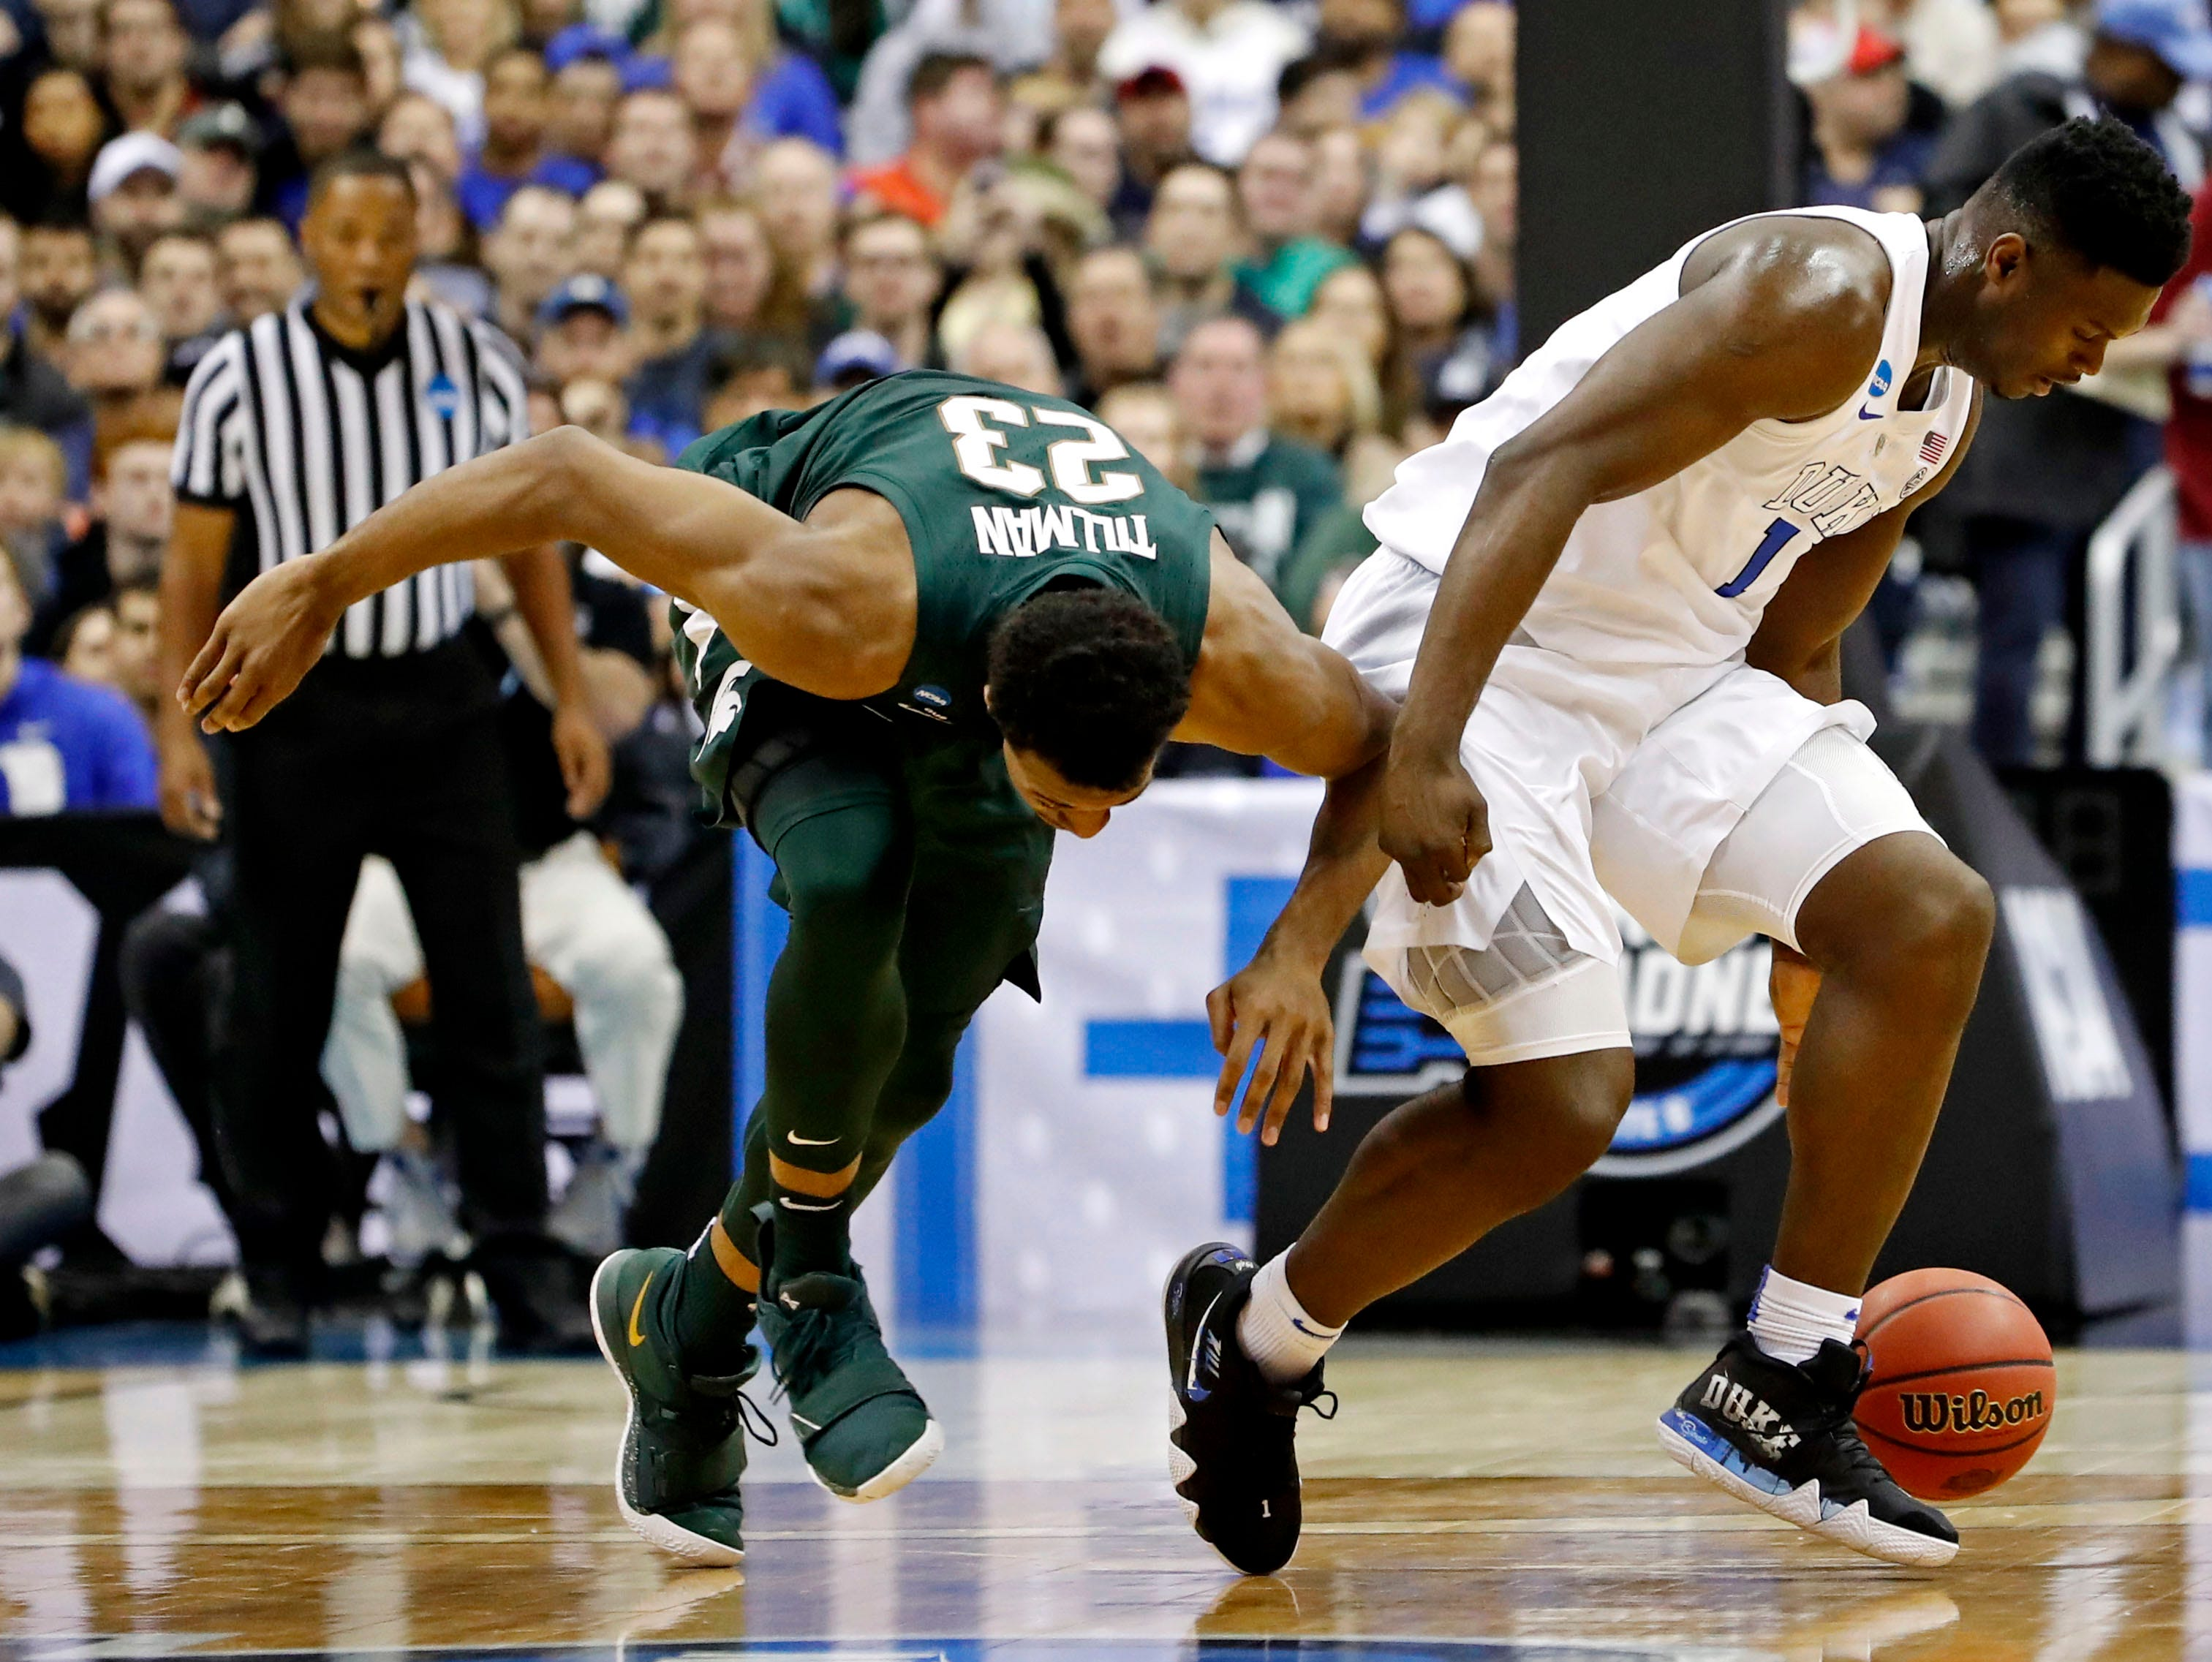 Duke Blue Devils forward Zion Williamson (1) and Michigan State Spartans forward Xavier Tillman (23) for a loose ball during the first half in the championship game of the east regional of the 2019 NCAA Tournament at Capital One Arena.